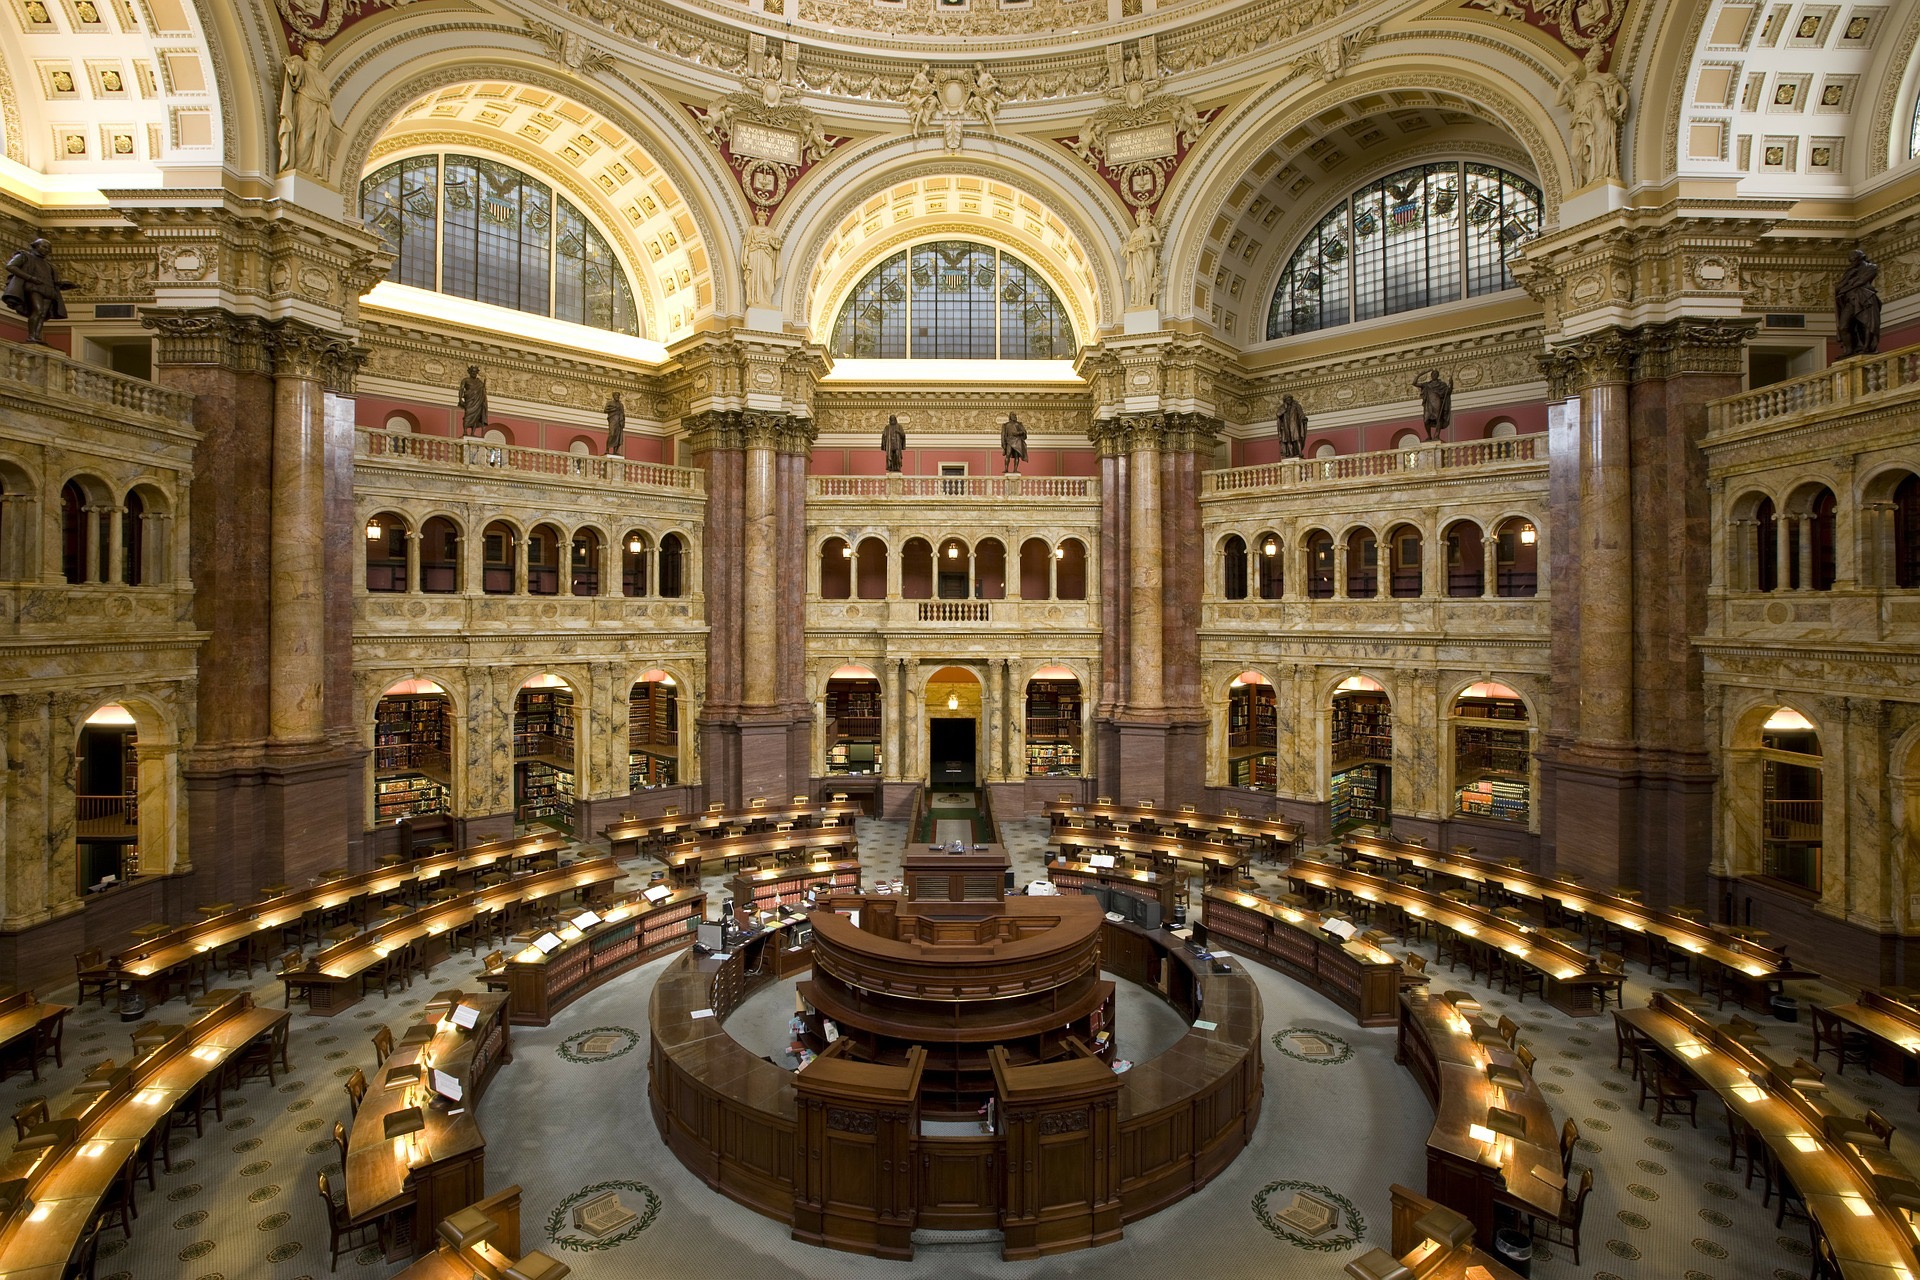 washington-dc-library-of-congress-biggest-in-usa.jpg